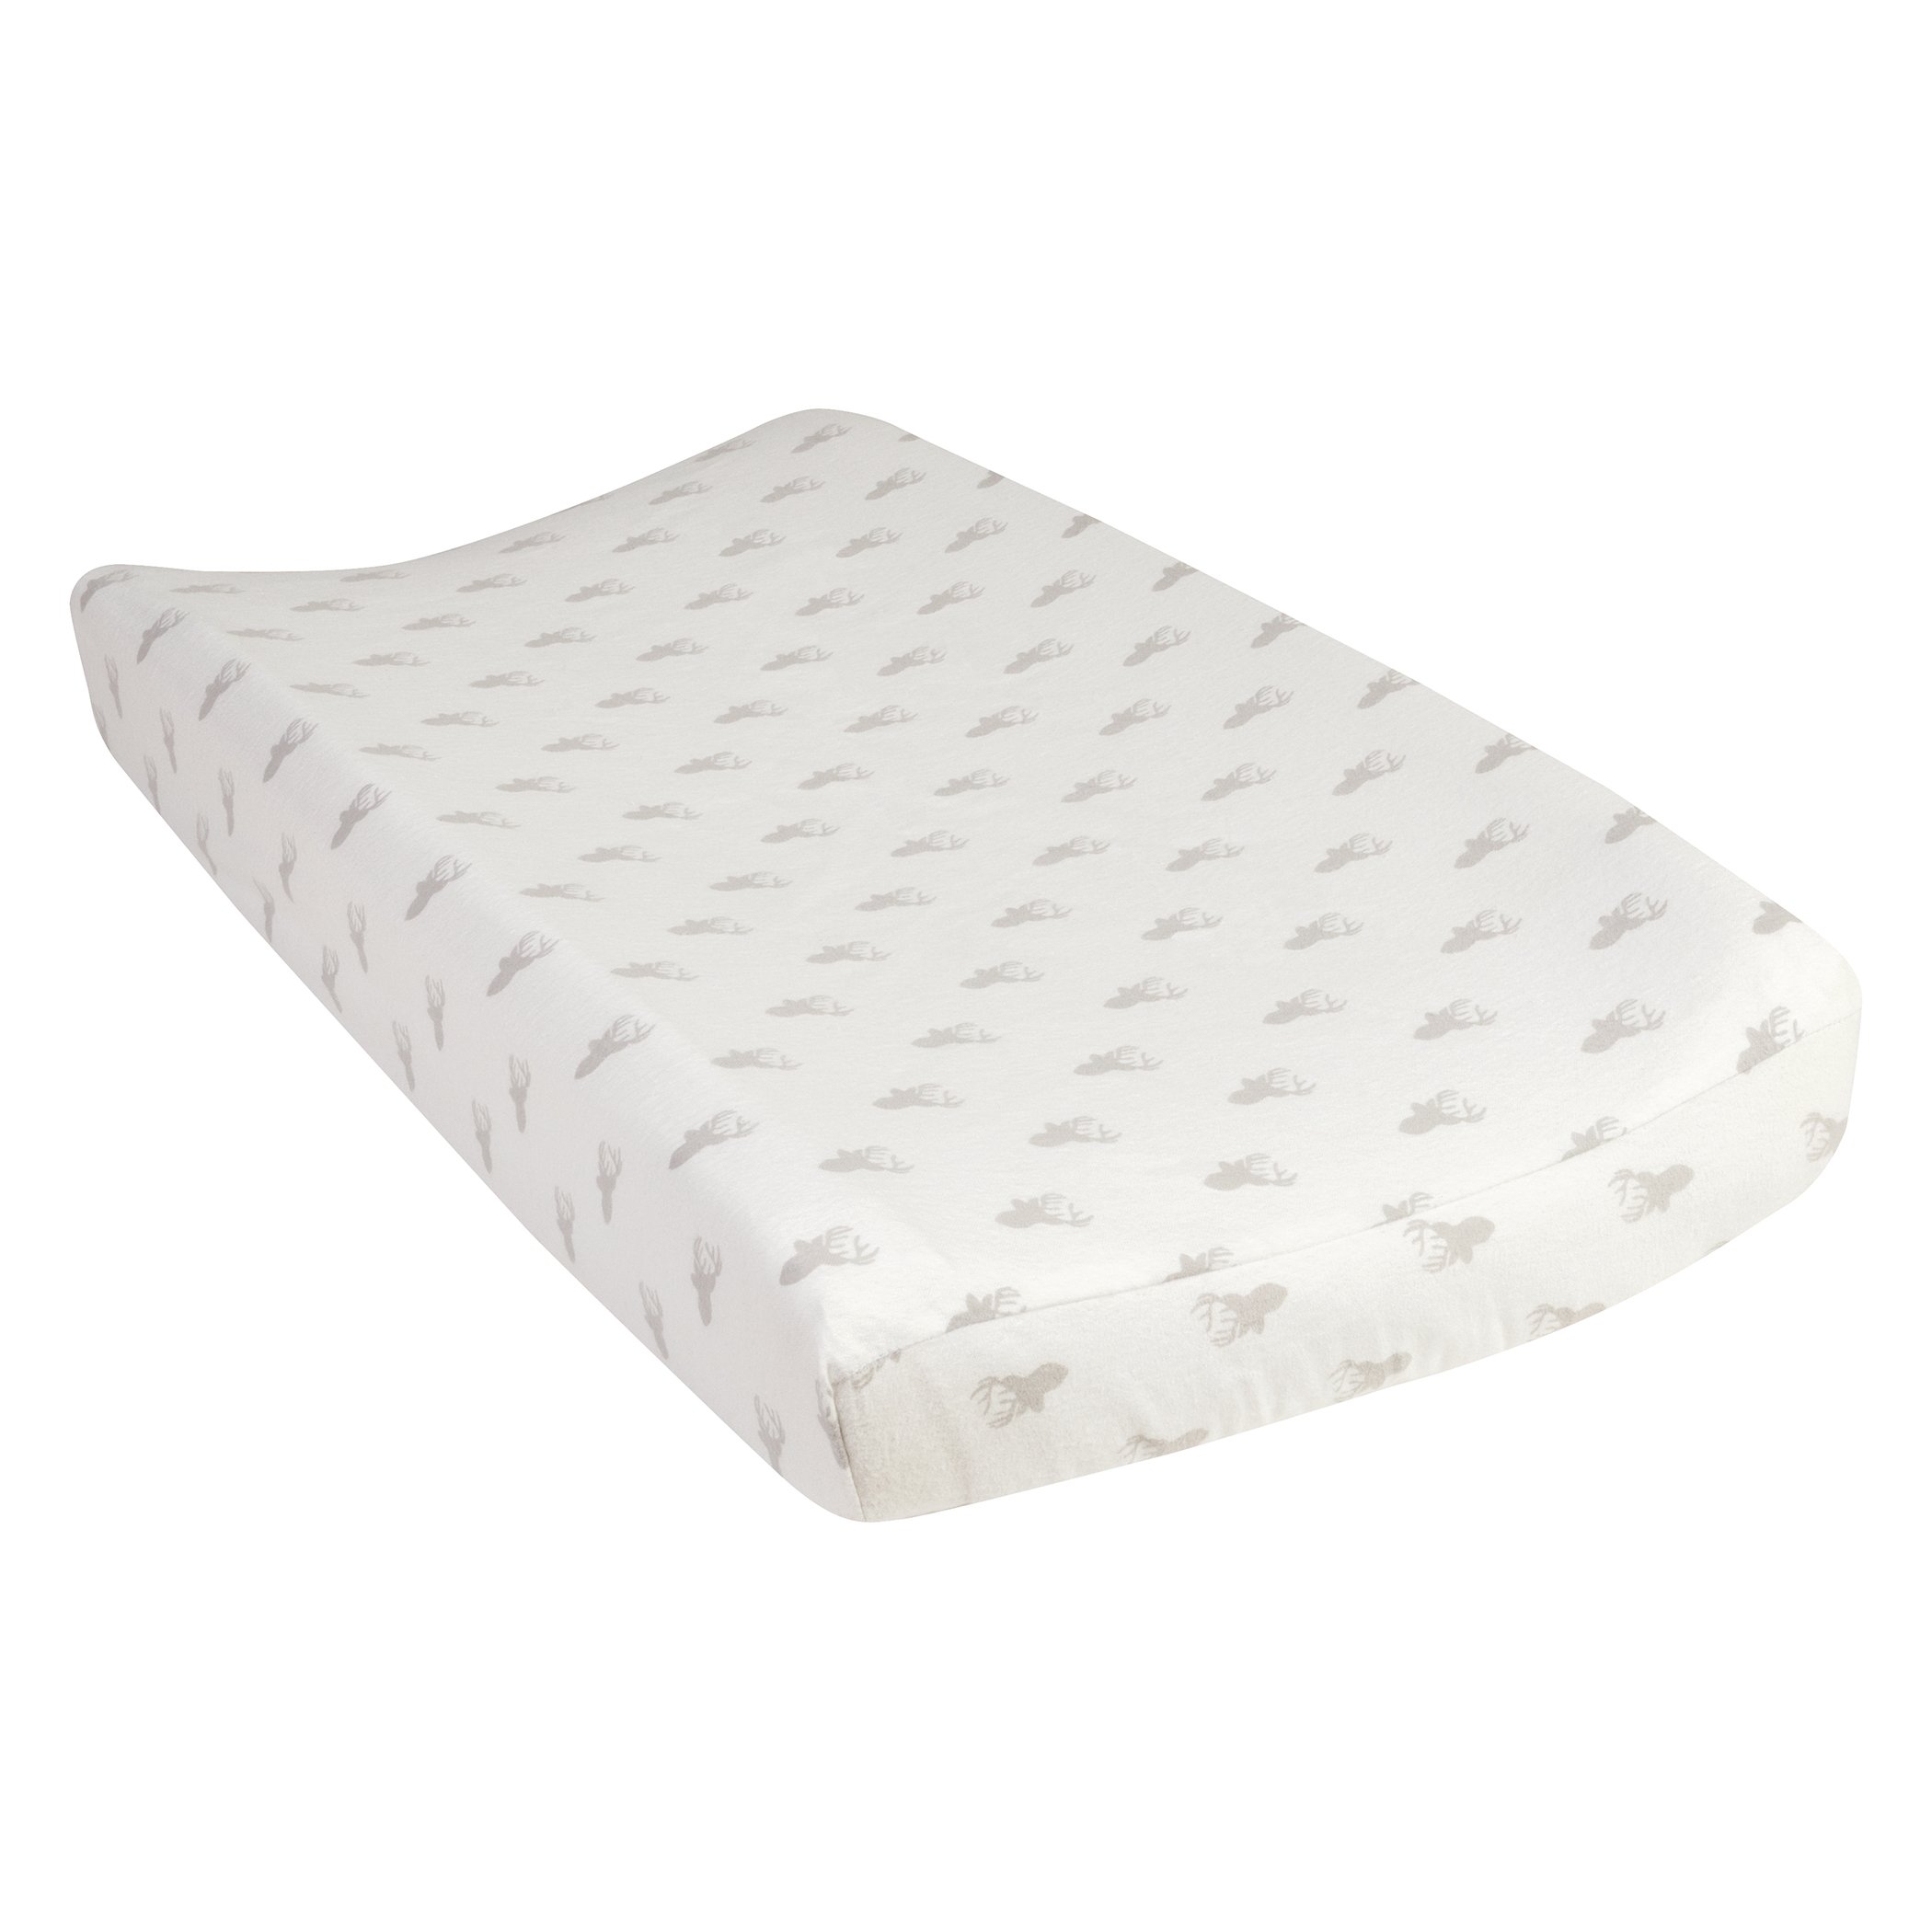 Trend Lab Gray Stag Silhouettes Deluxe Flannel Changing Pad Cover